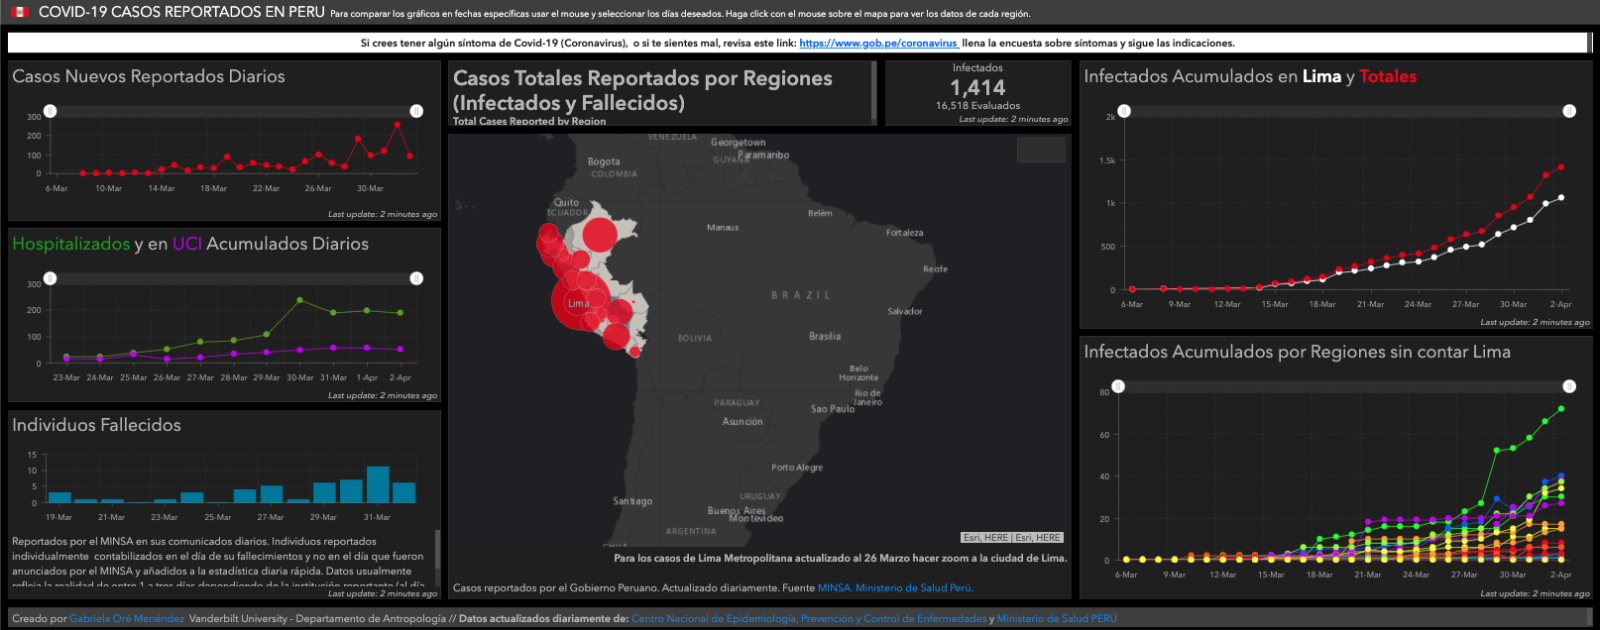 A map of Peru with red dots of varying sizes representing the number of COVID-19 cases in each municipality. On the left is a key and a graphs showing the breakdown of illness severity. On the right are time series graphs showing the rate of infection including and excluding Lima, the epicenter.